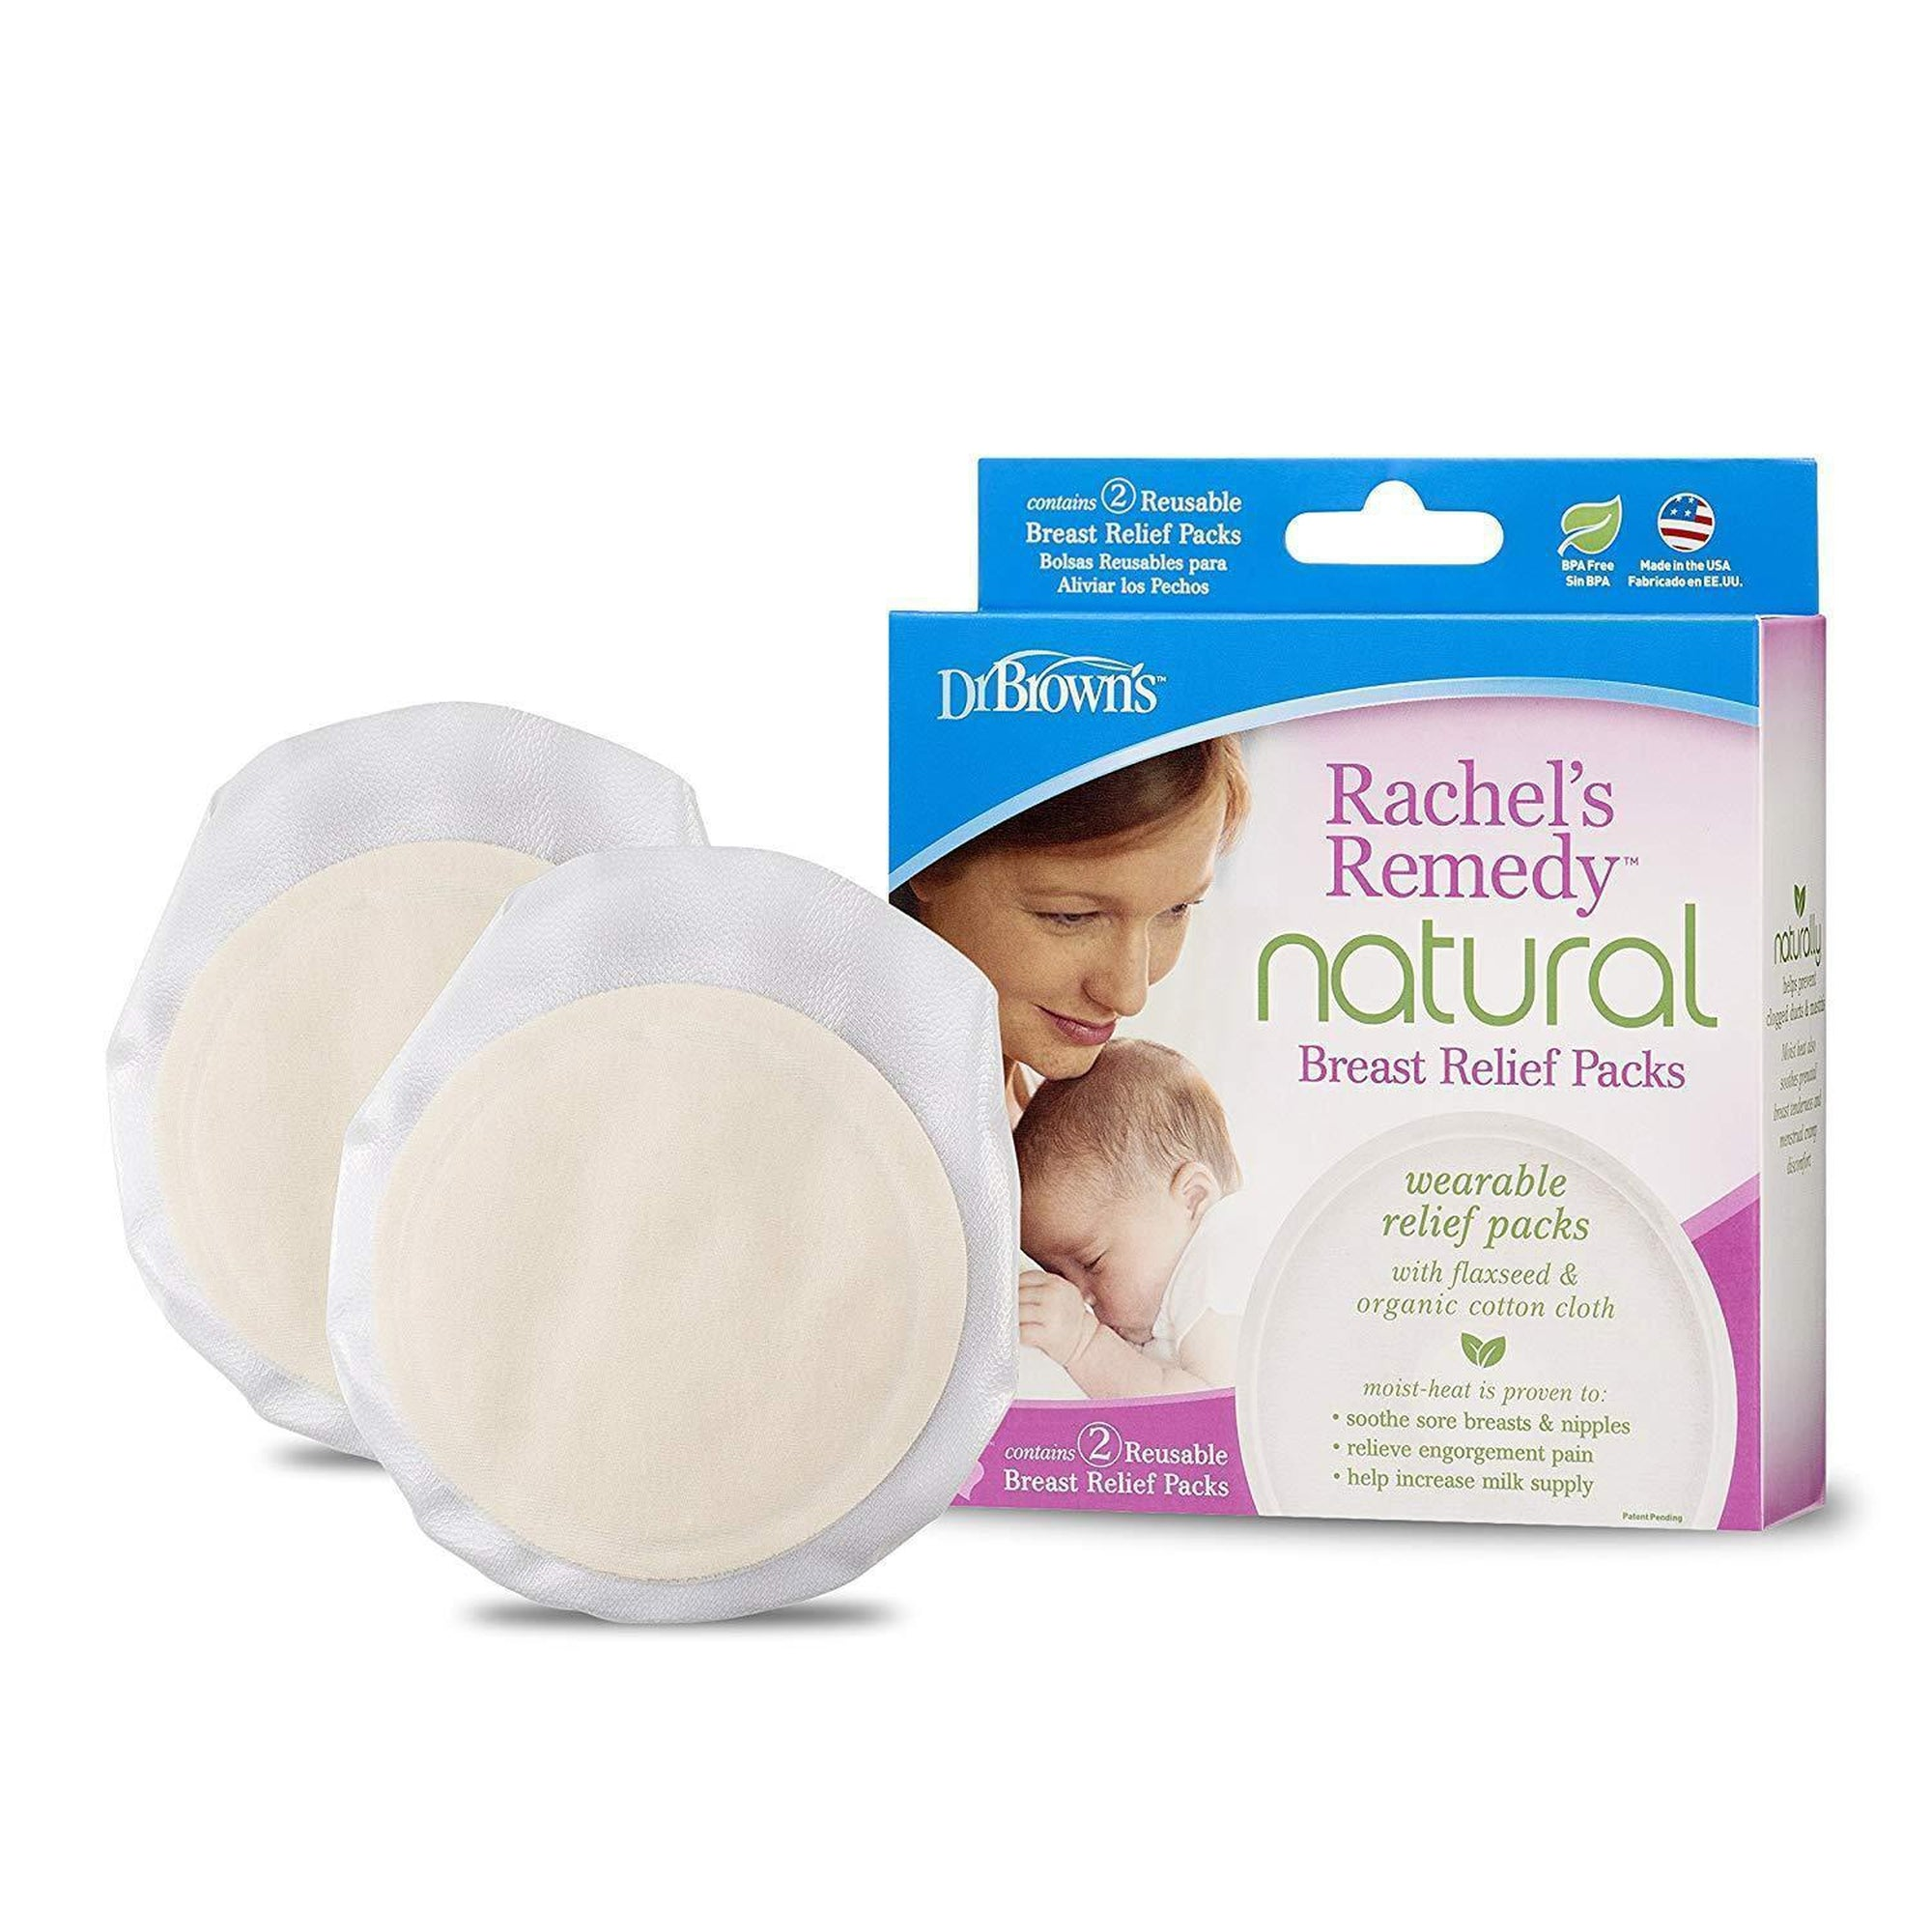 Dr. Brown's Rachel's Remedy Breast Relief Packs, 2 Pack-Breast Therapy and Relief-Mother and Baby Shop Kenya's #1 Online Baby Shop